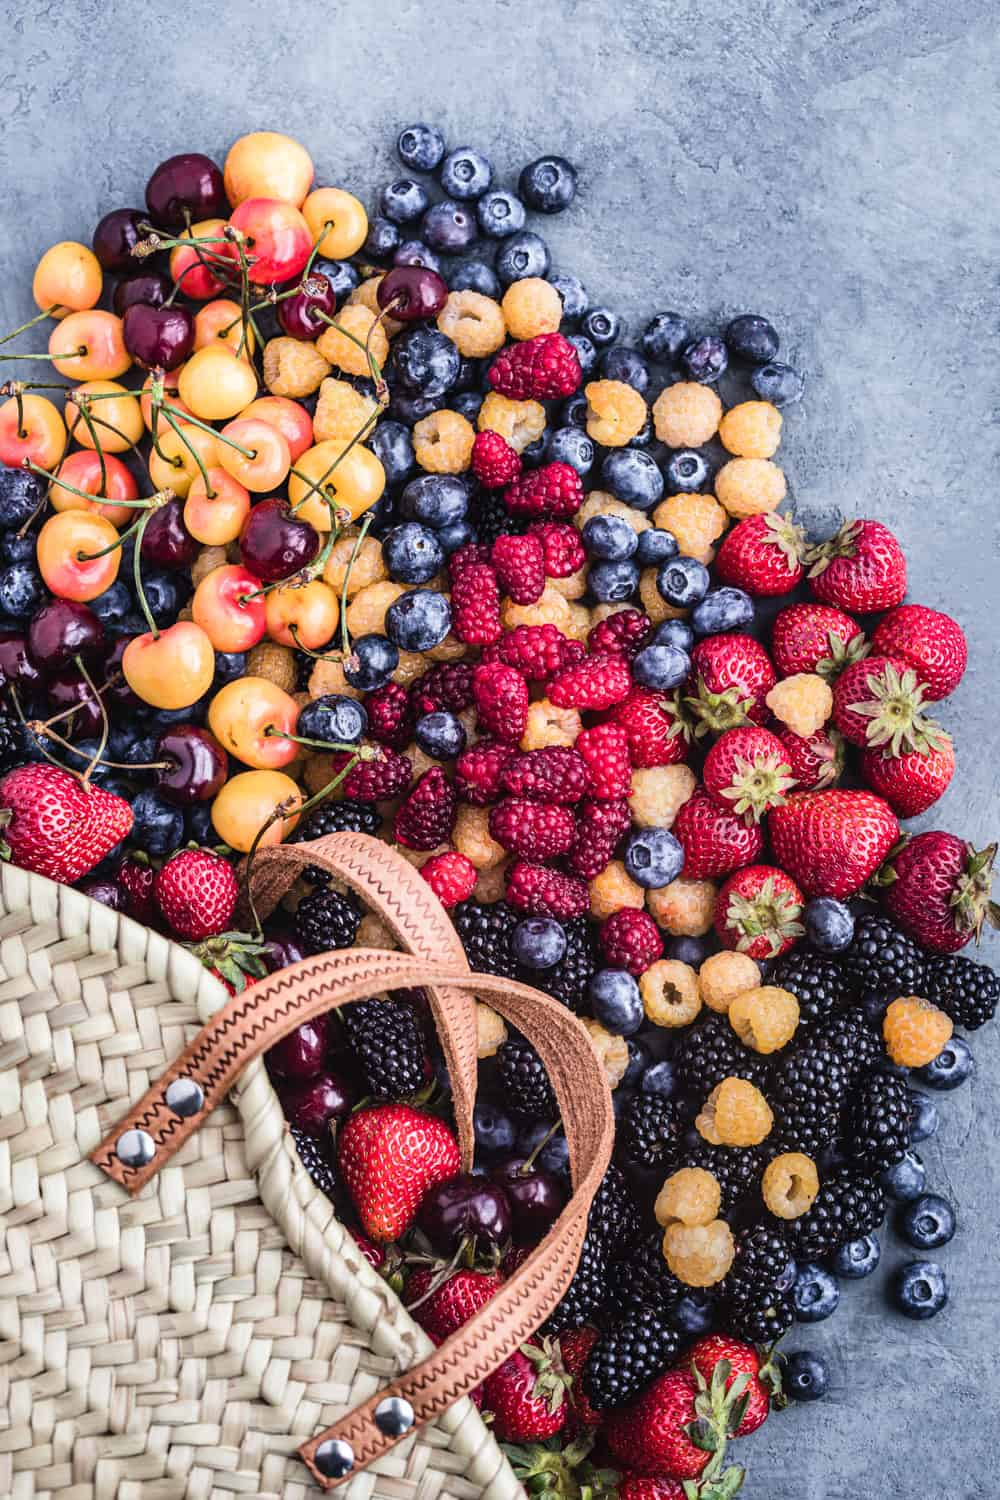 bag overflowing with farmers market fresh berries!